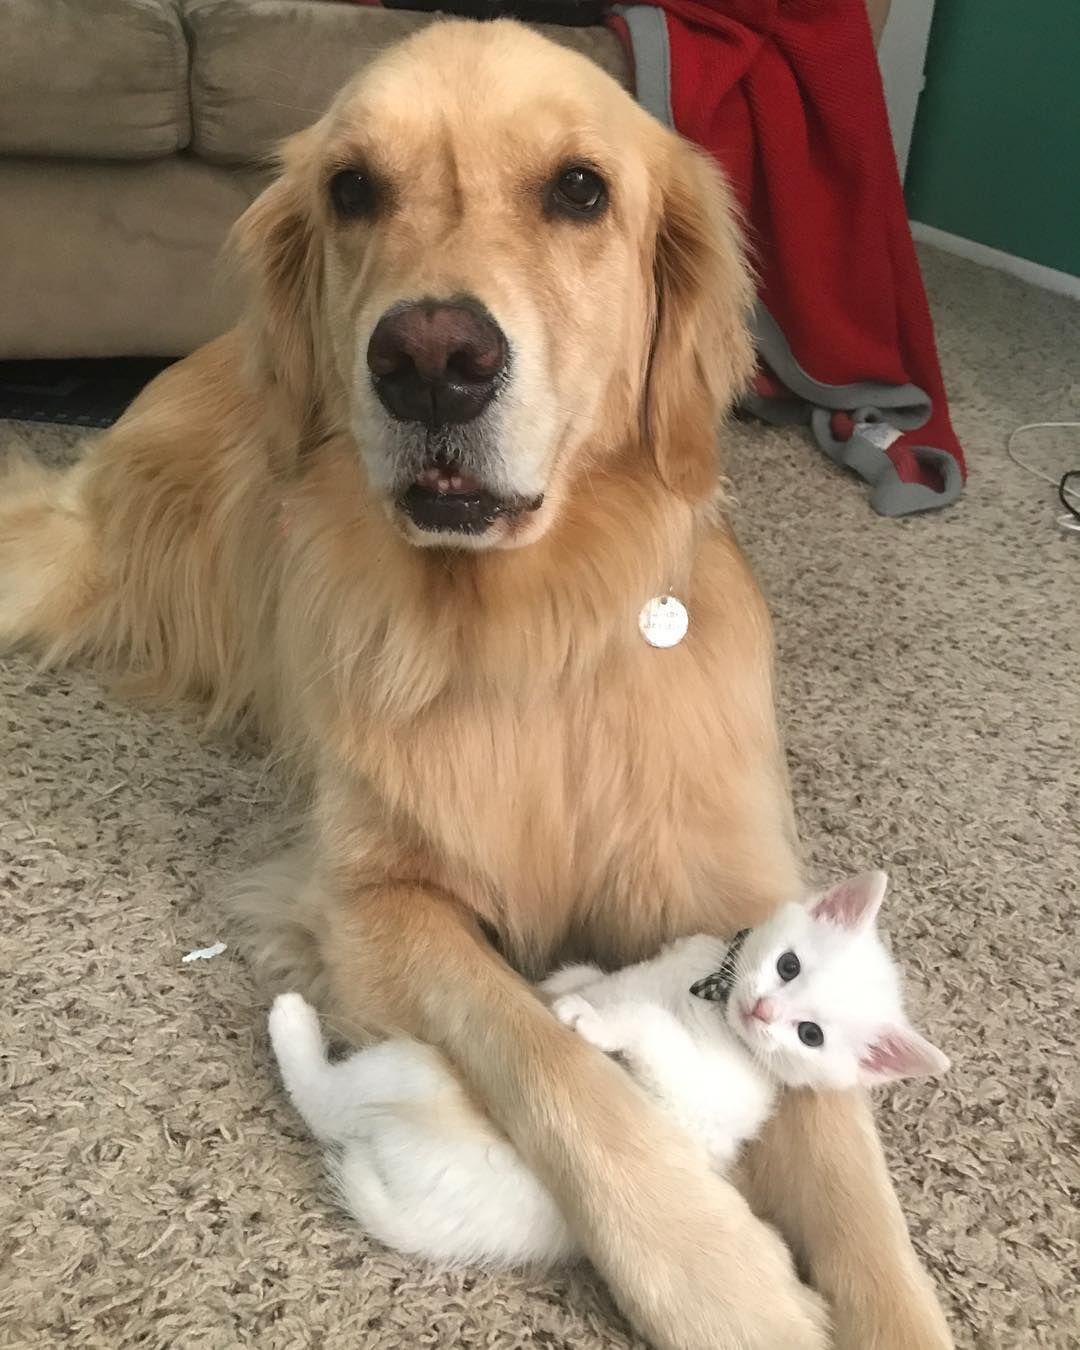 Plushie Loving Therapy Dog Gets A Real Live Kitten To Cuddle Iheartdogs Com Teddy Dog Giant Dogs Animals Friendship